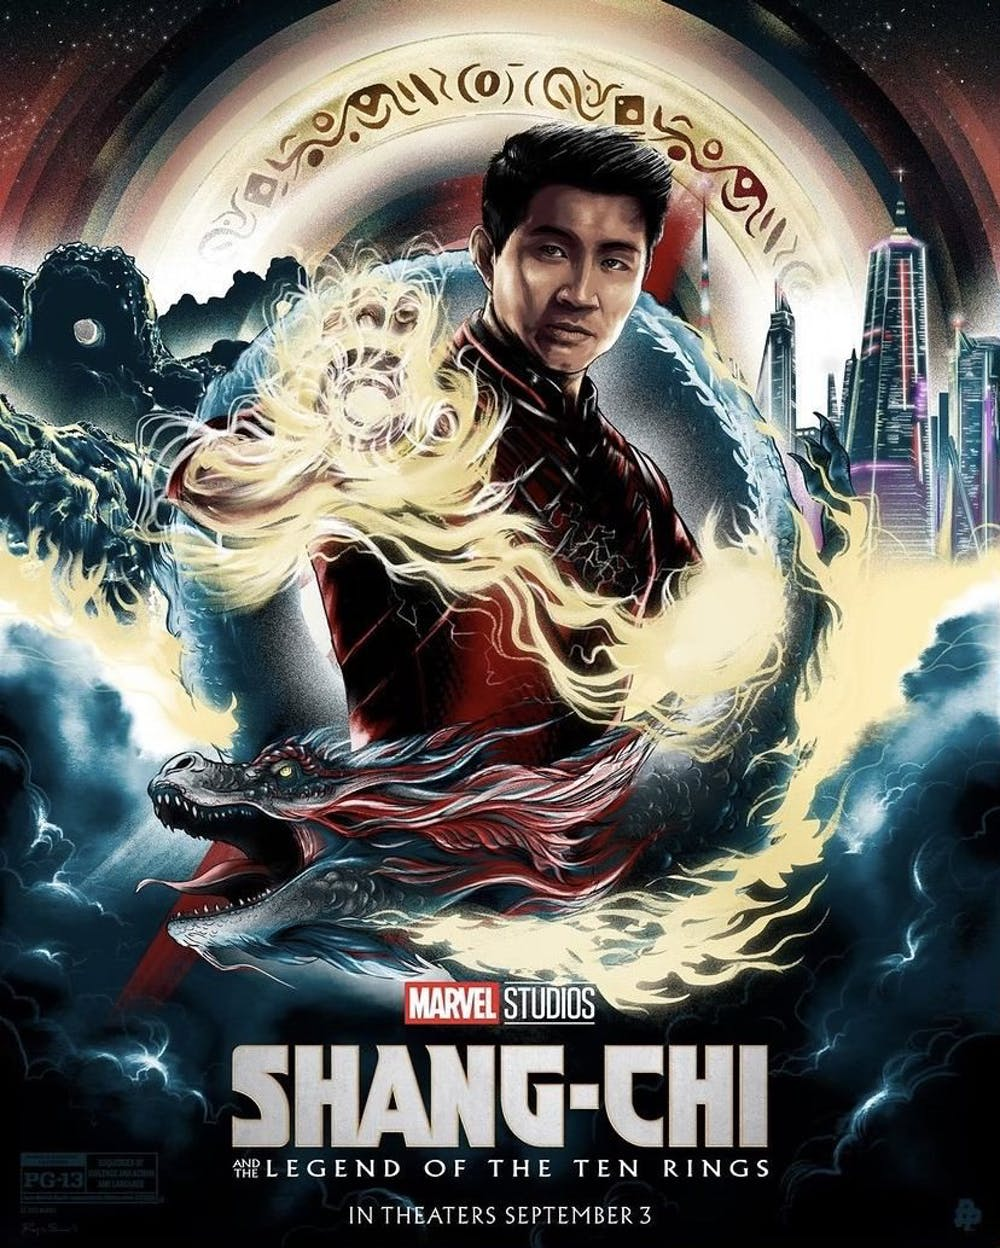 <p>&quot;Shang-Chi and the Legend of the Ten Rings&quot; is the second movie out of Phase 4 of Marvel.</p>